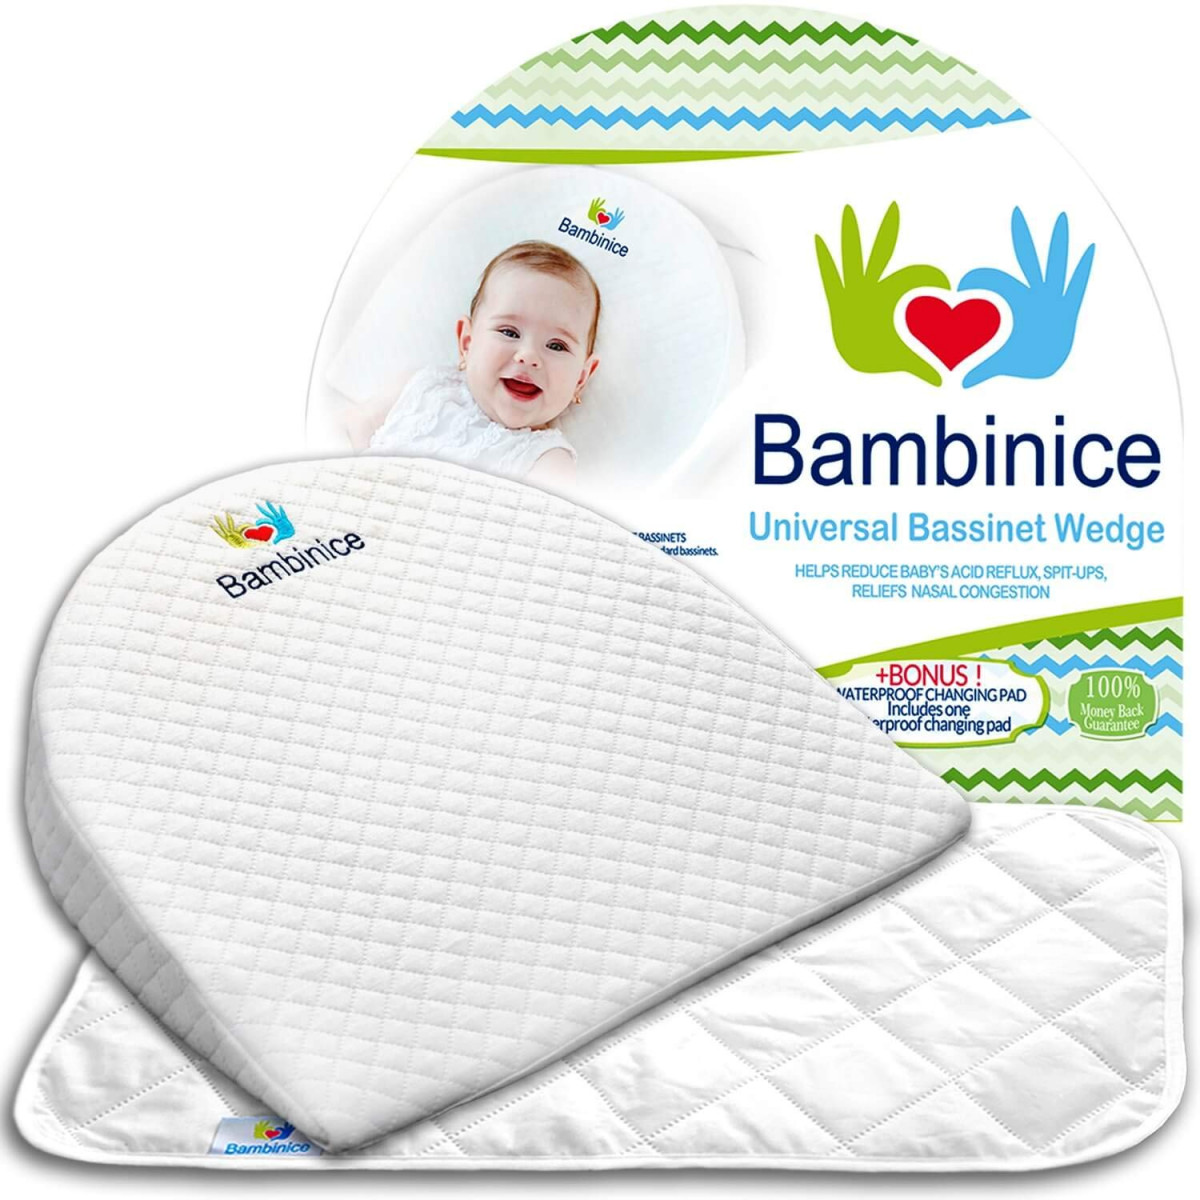 Newborn Bassinet Reflux Bambinice Universal Bassinet Wedge Infant Crib Pillow Waterproof Changing Pad Liner Portable Incline Cushion Newborn Reflux And Nasal Congestion